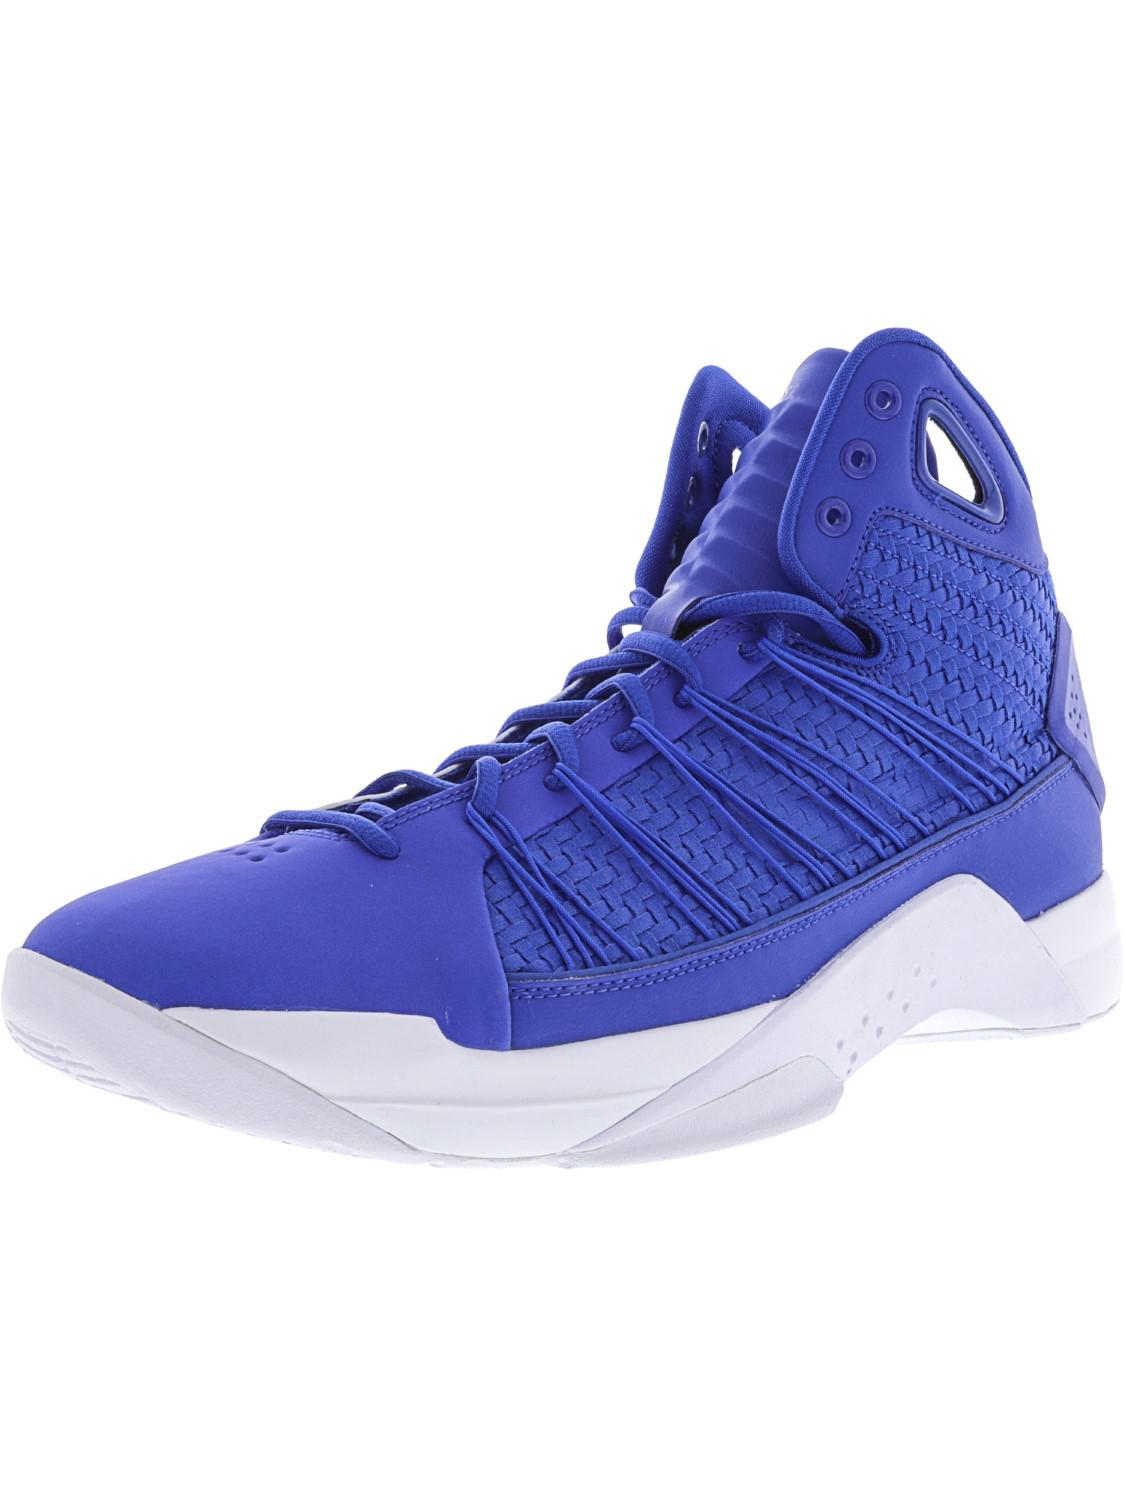 baba7821d493 Lyst - Nike Men s Hyperdunk Lux High-top Basketball Shoe in Blue for Men